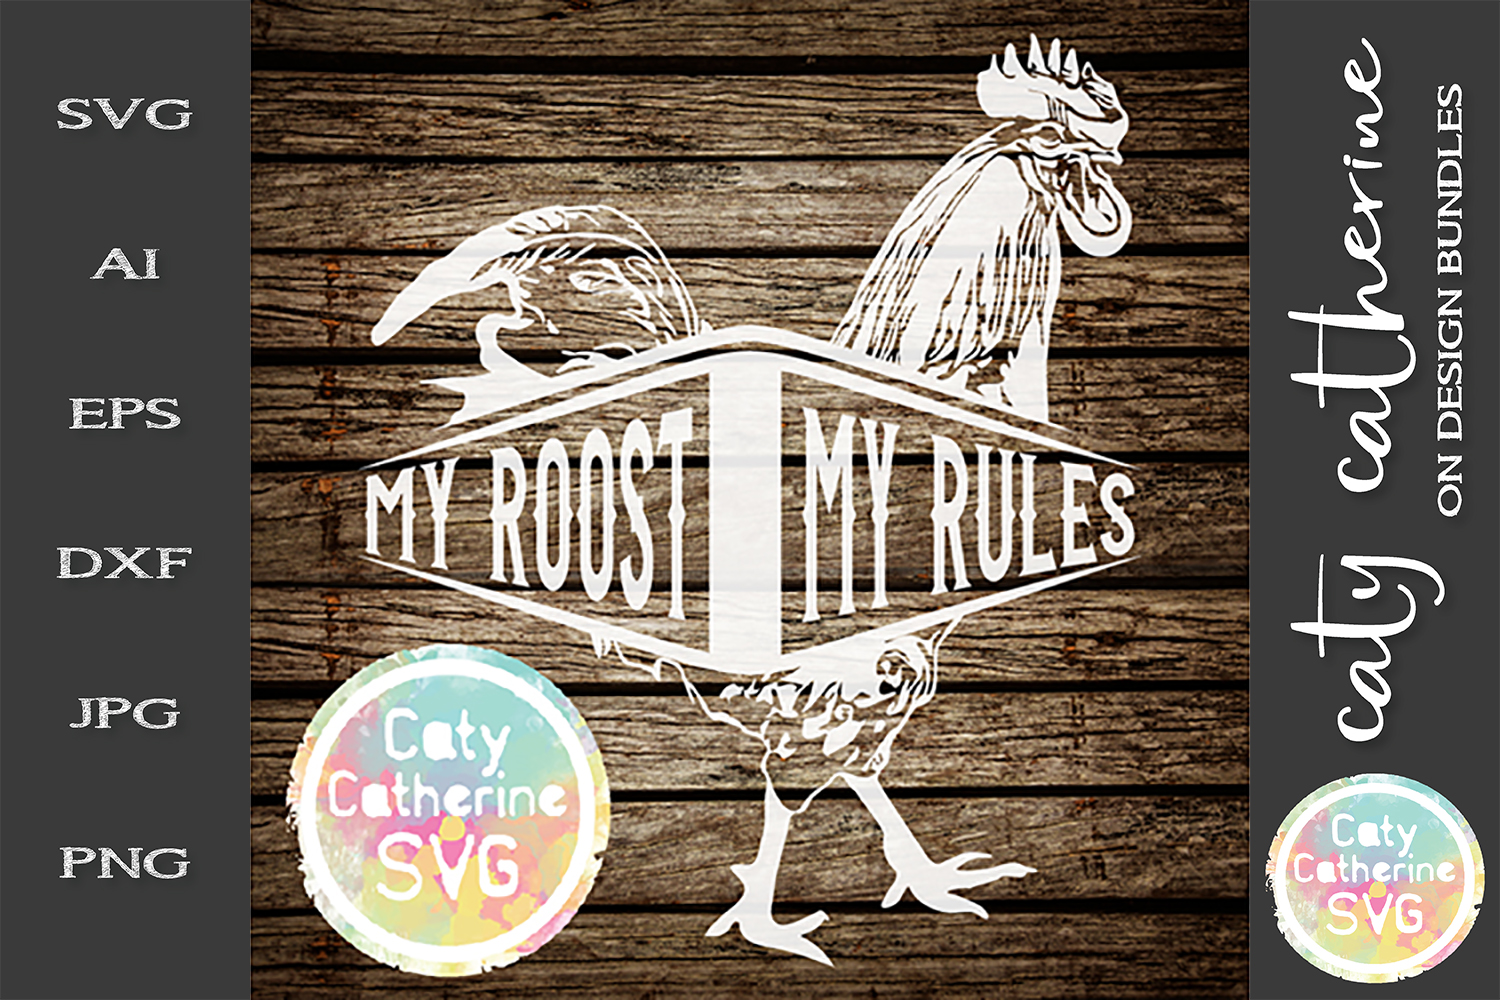 My Roost My Rules SVG Cut File example image 1